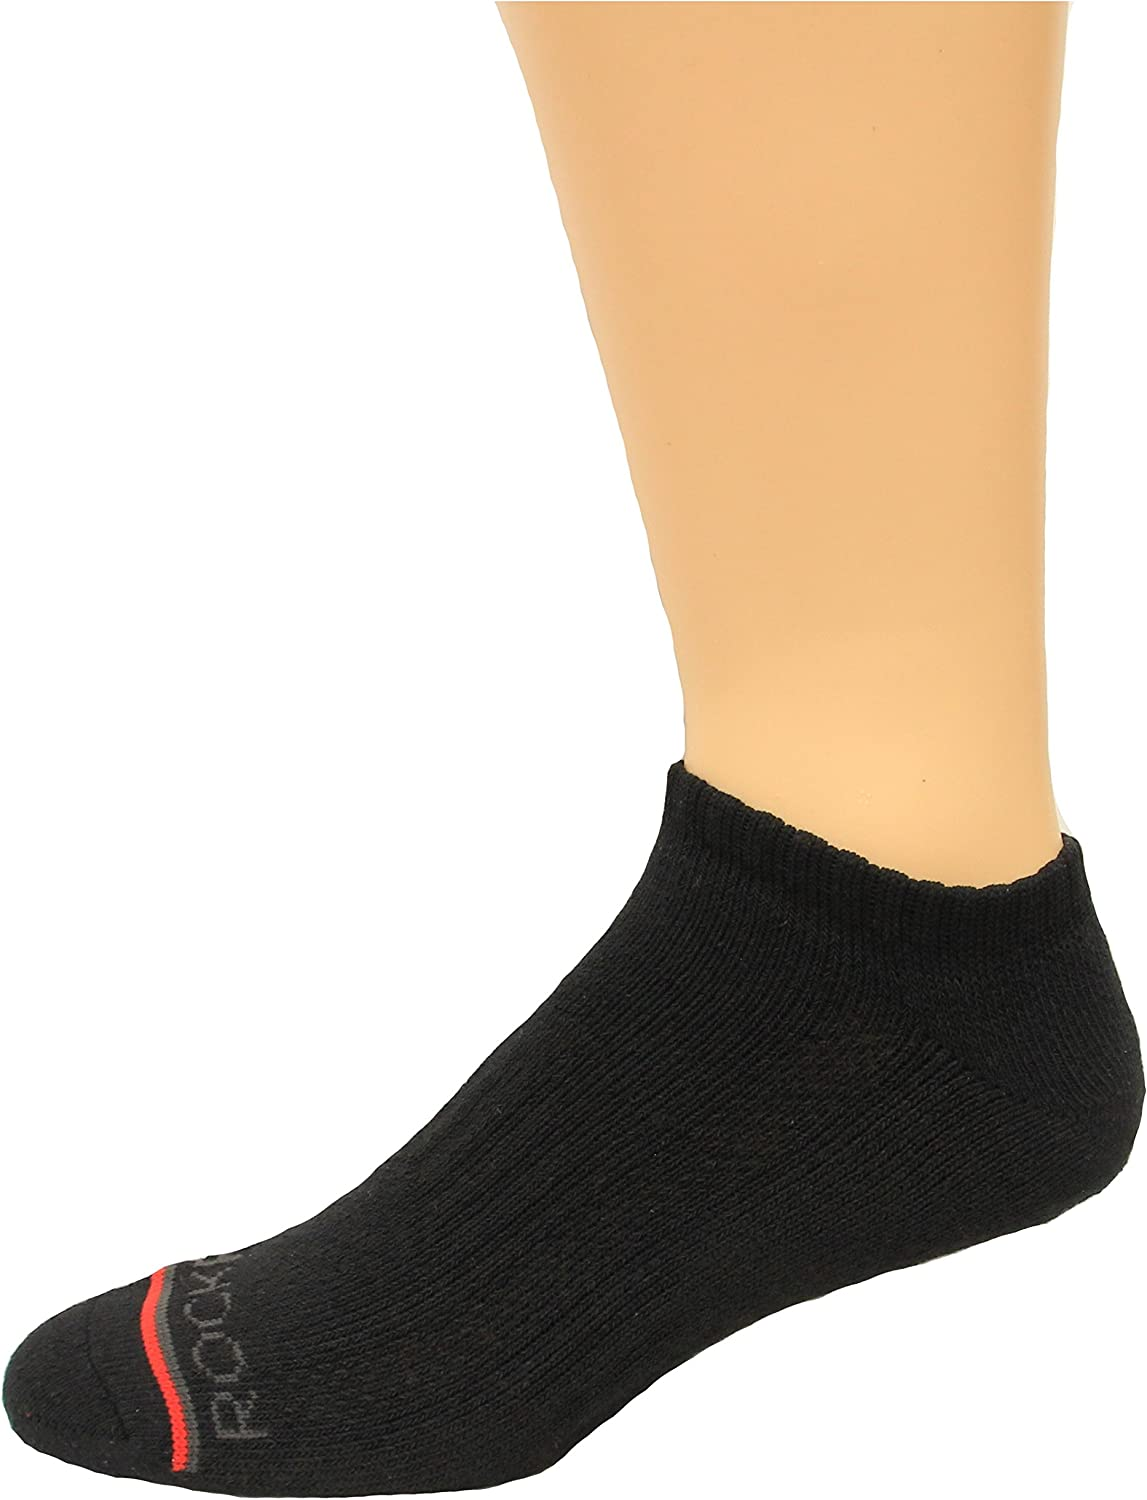 Rockport Men's No Show Socks 4 Pair, Black, Men's 8-12